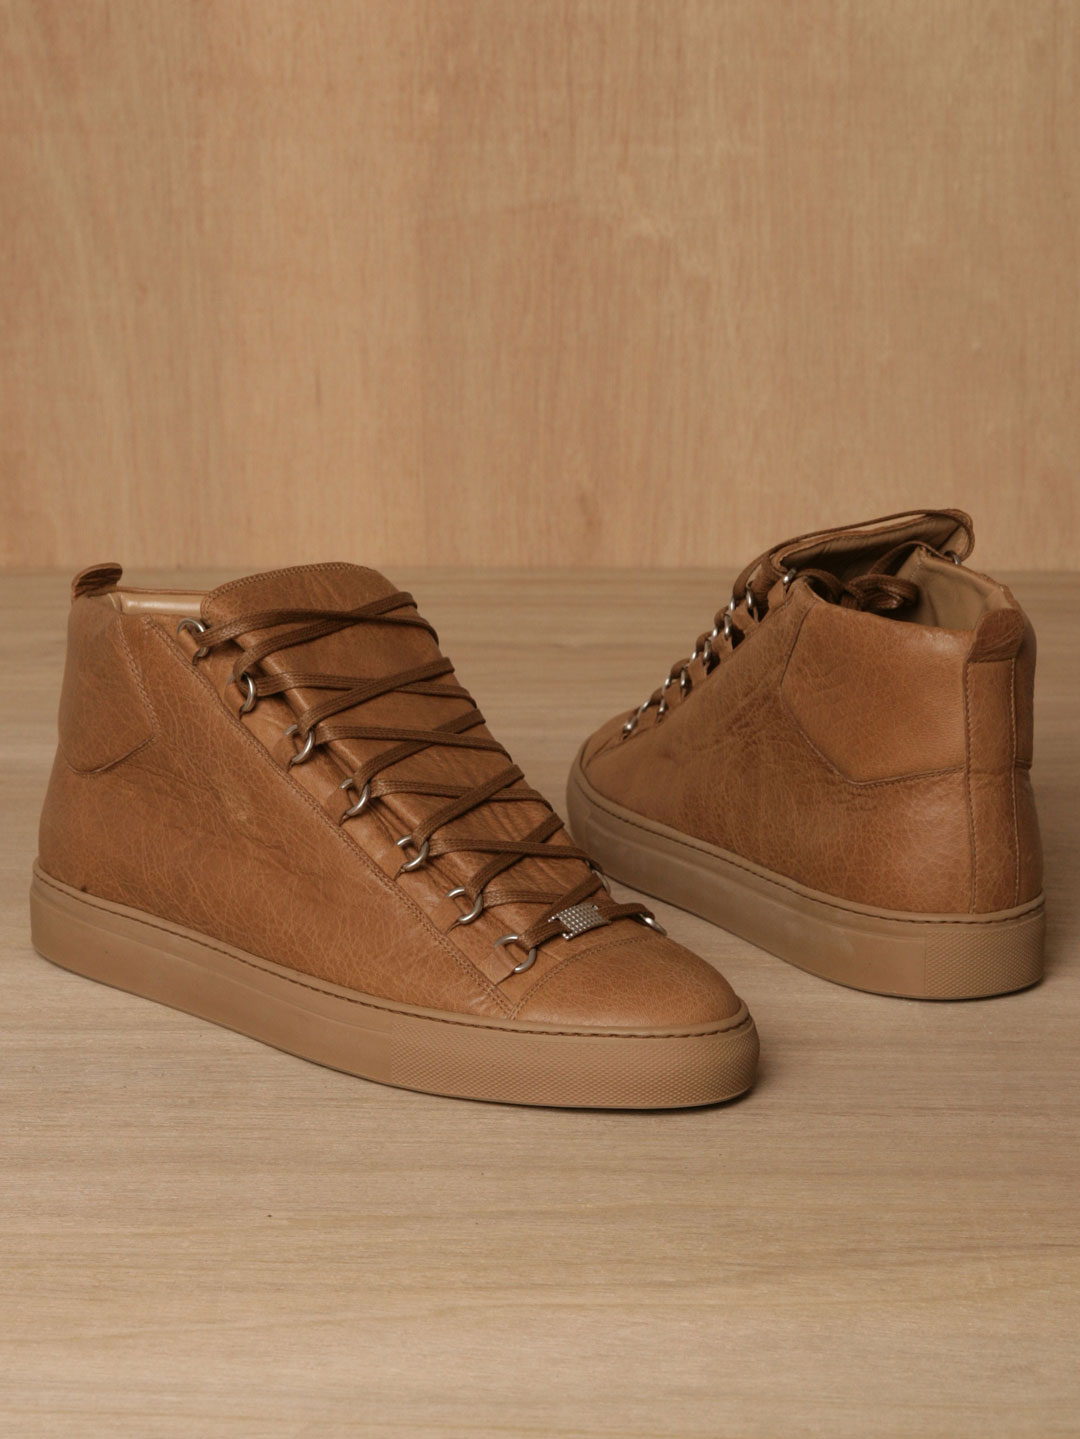 Where To Buy Born Shoes Cheap